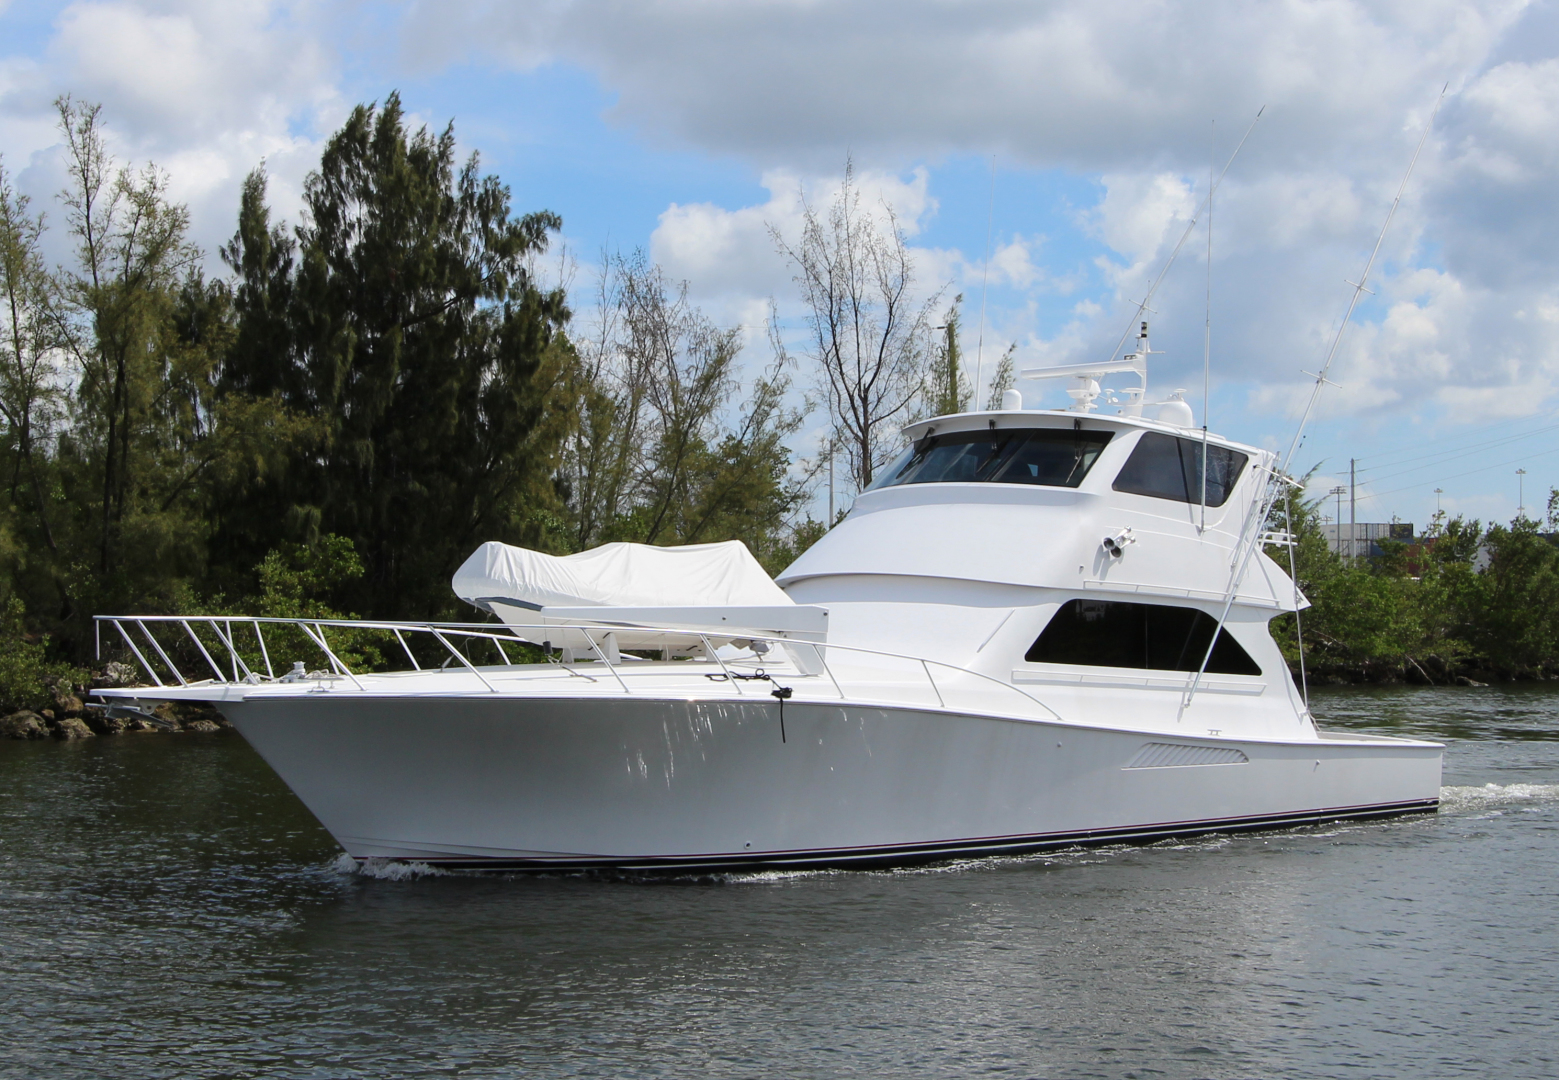 61' Viking 2004 Enclosed Bridge Sea Sea Rider